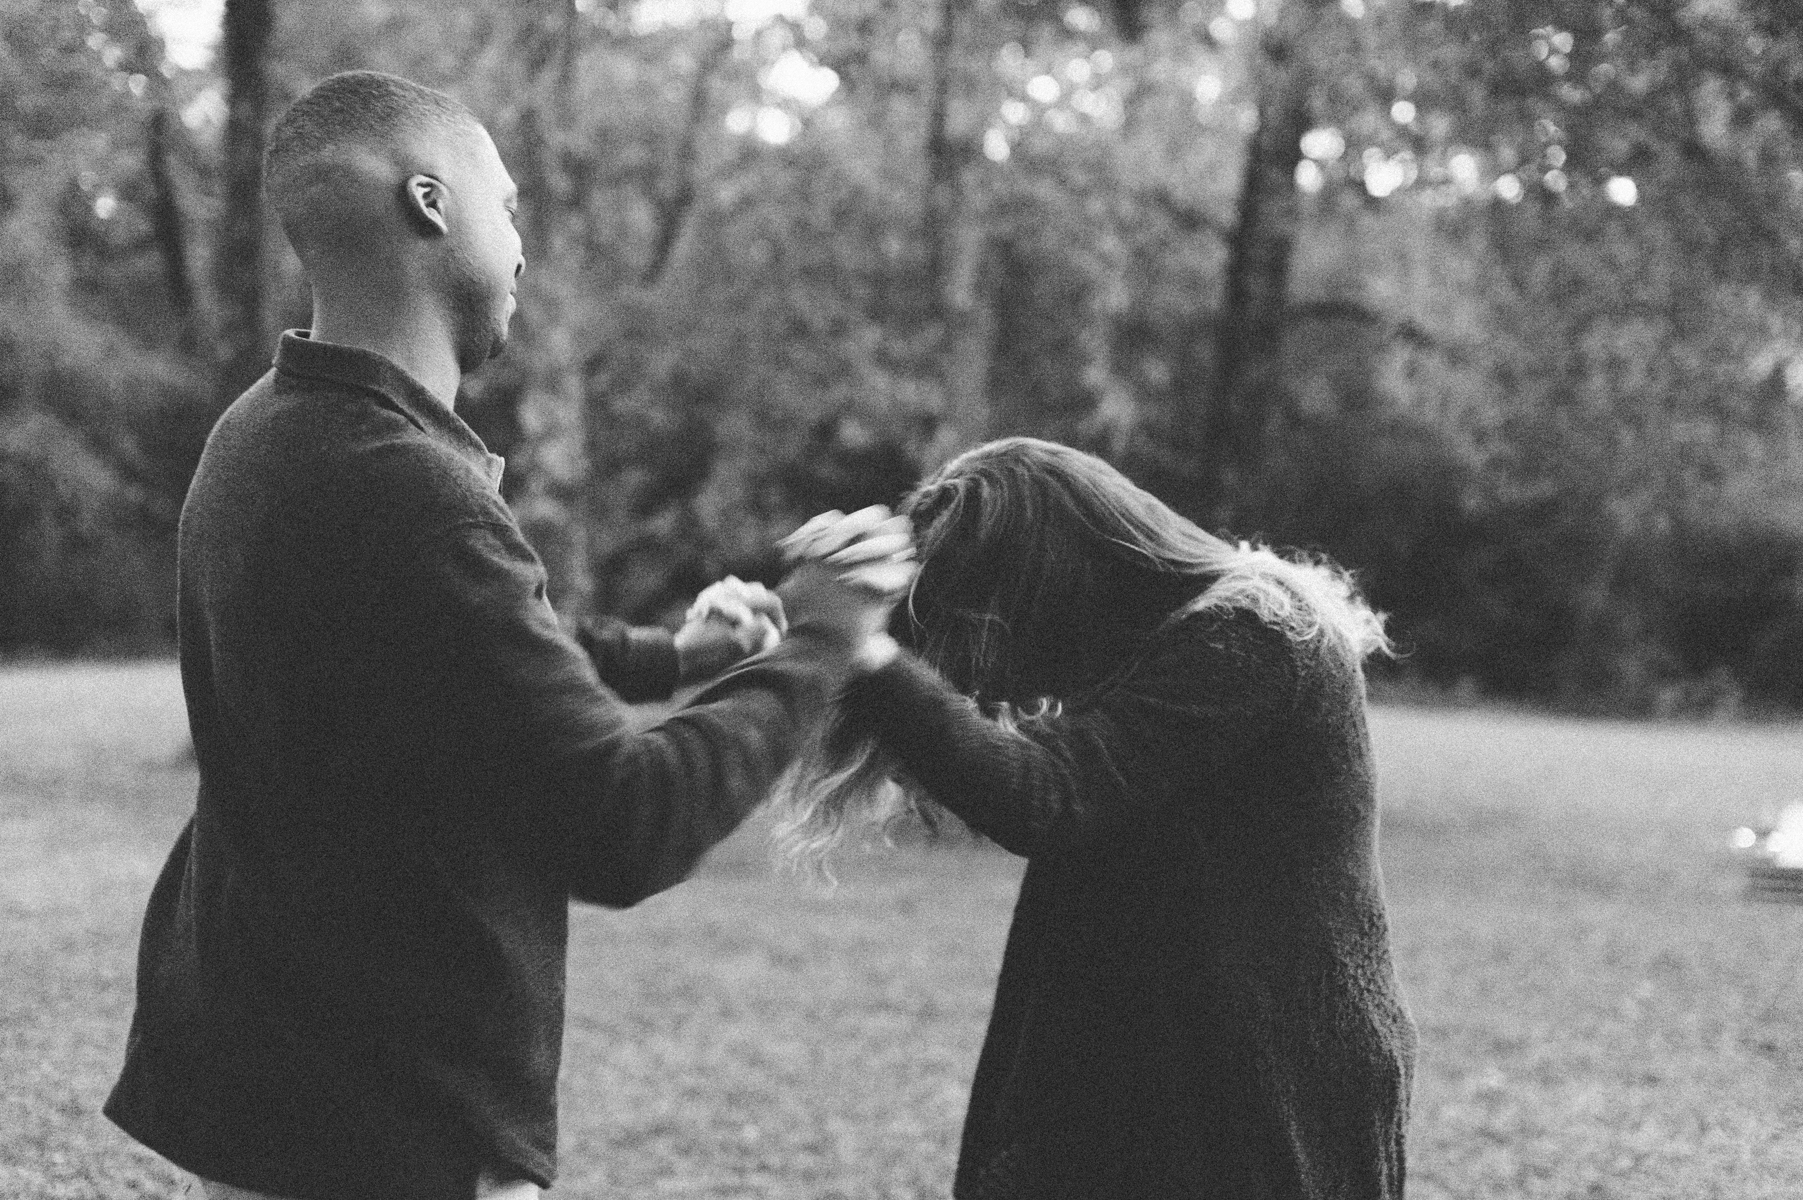 atlanta-engagement-photographer-atlanta-wedding-photographer-trent-david-kat-proposal-preview-50.jpg